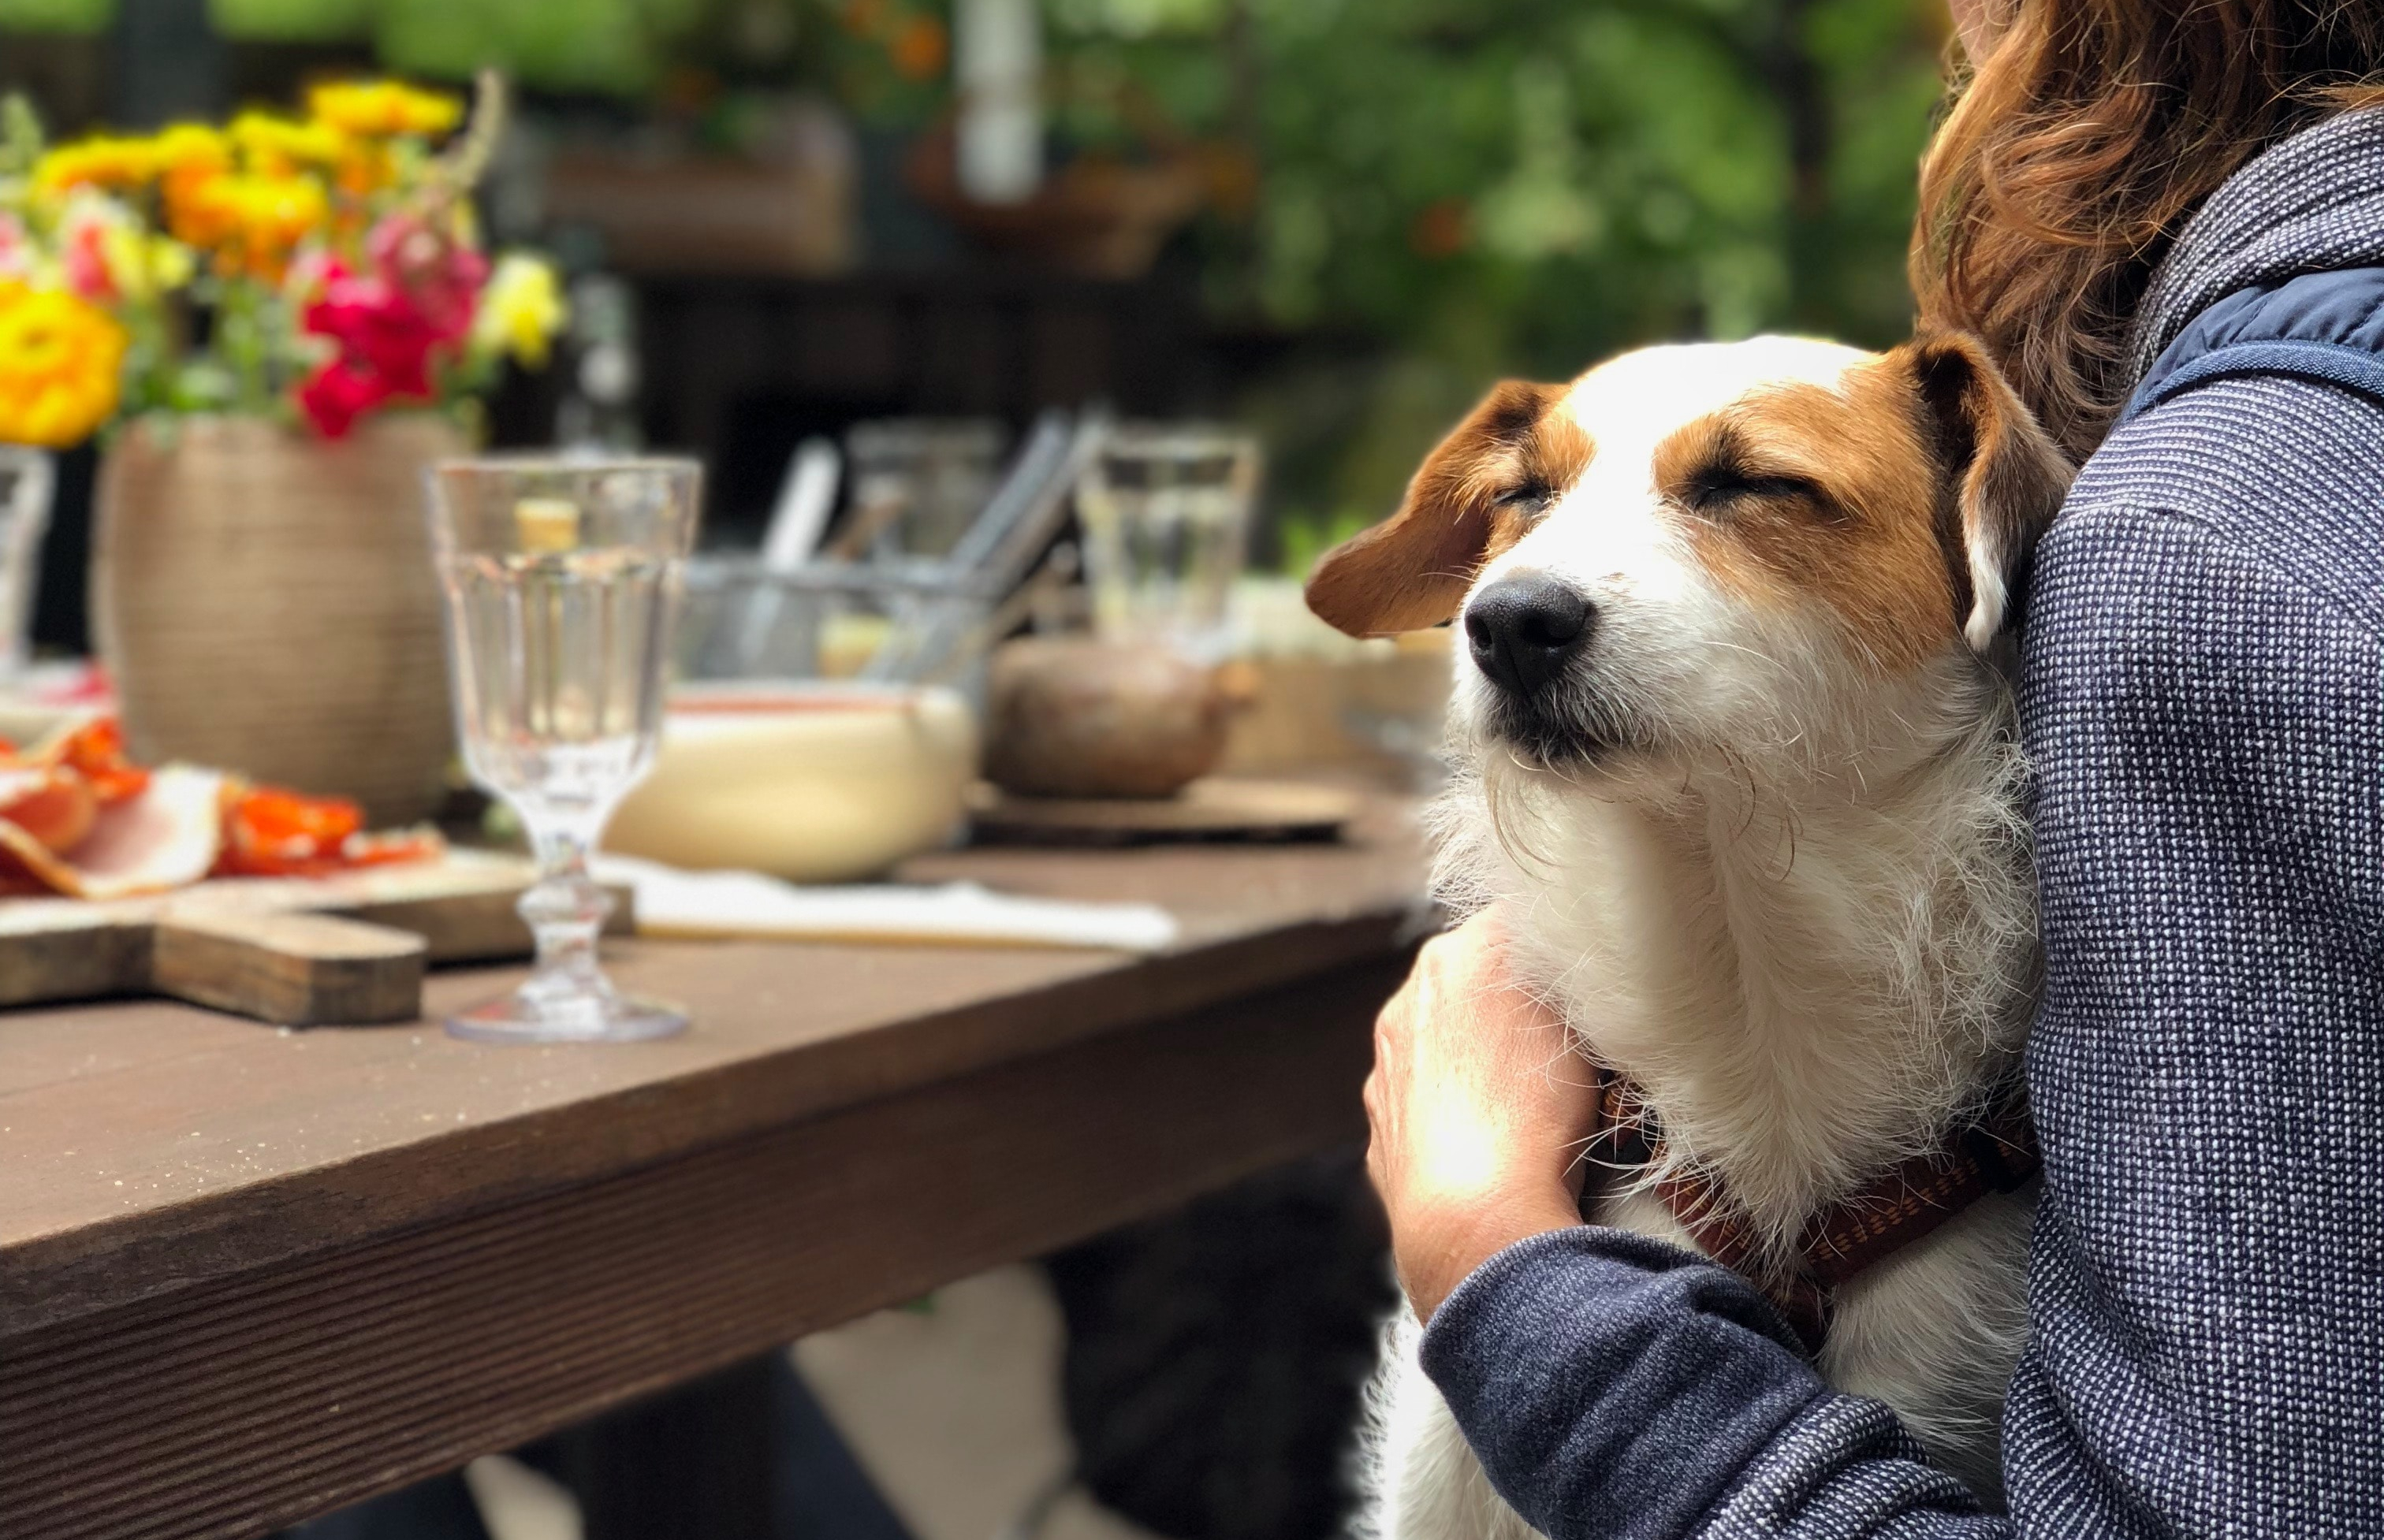 Should you take your nervous dog to a dog friendly place? - Dog Furiendly